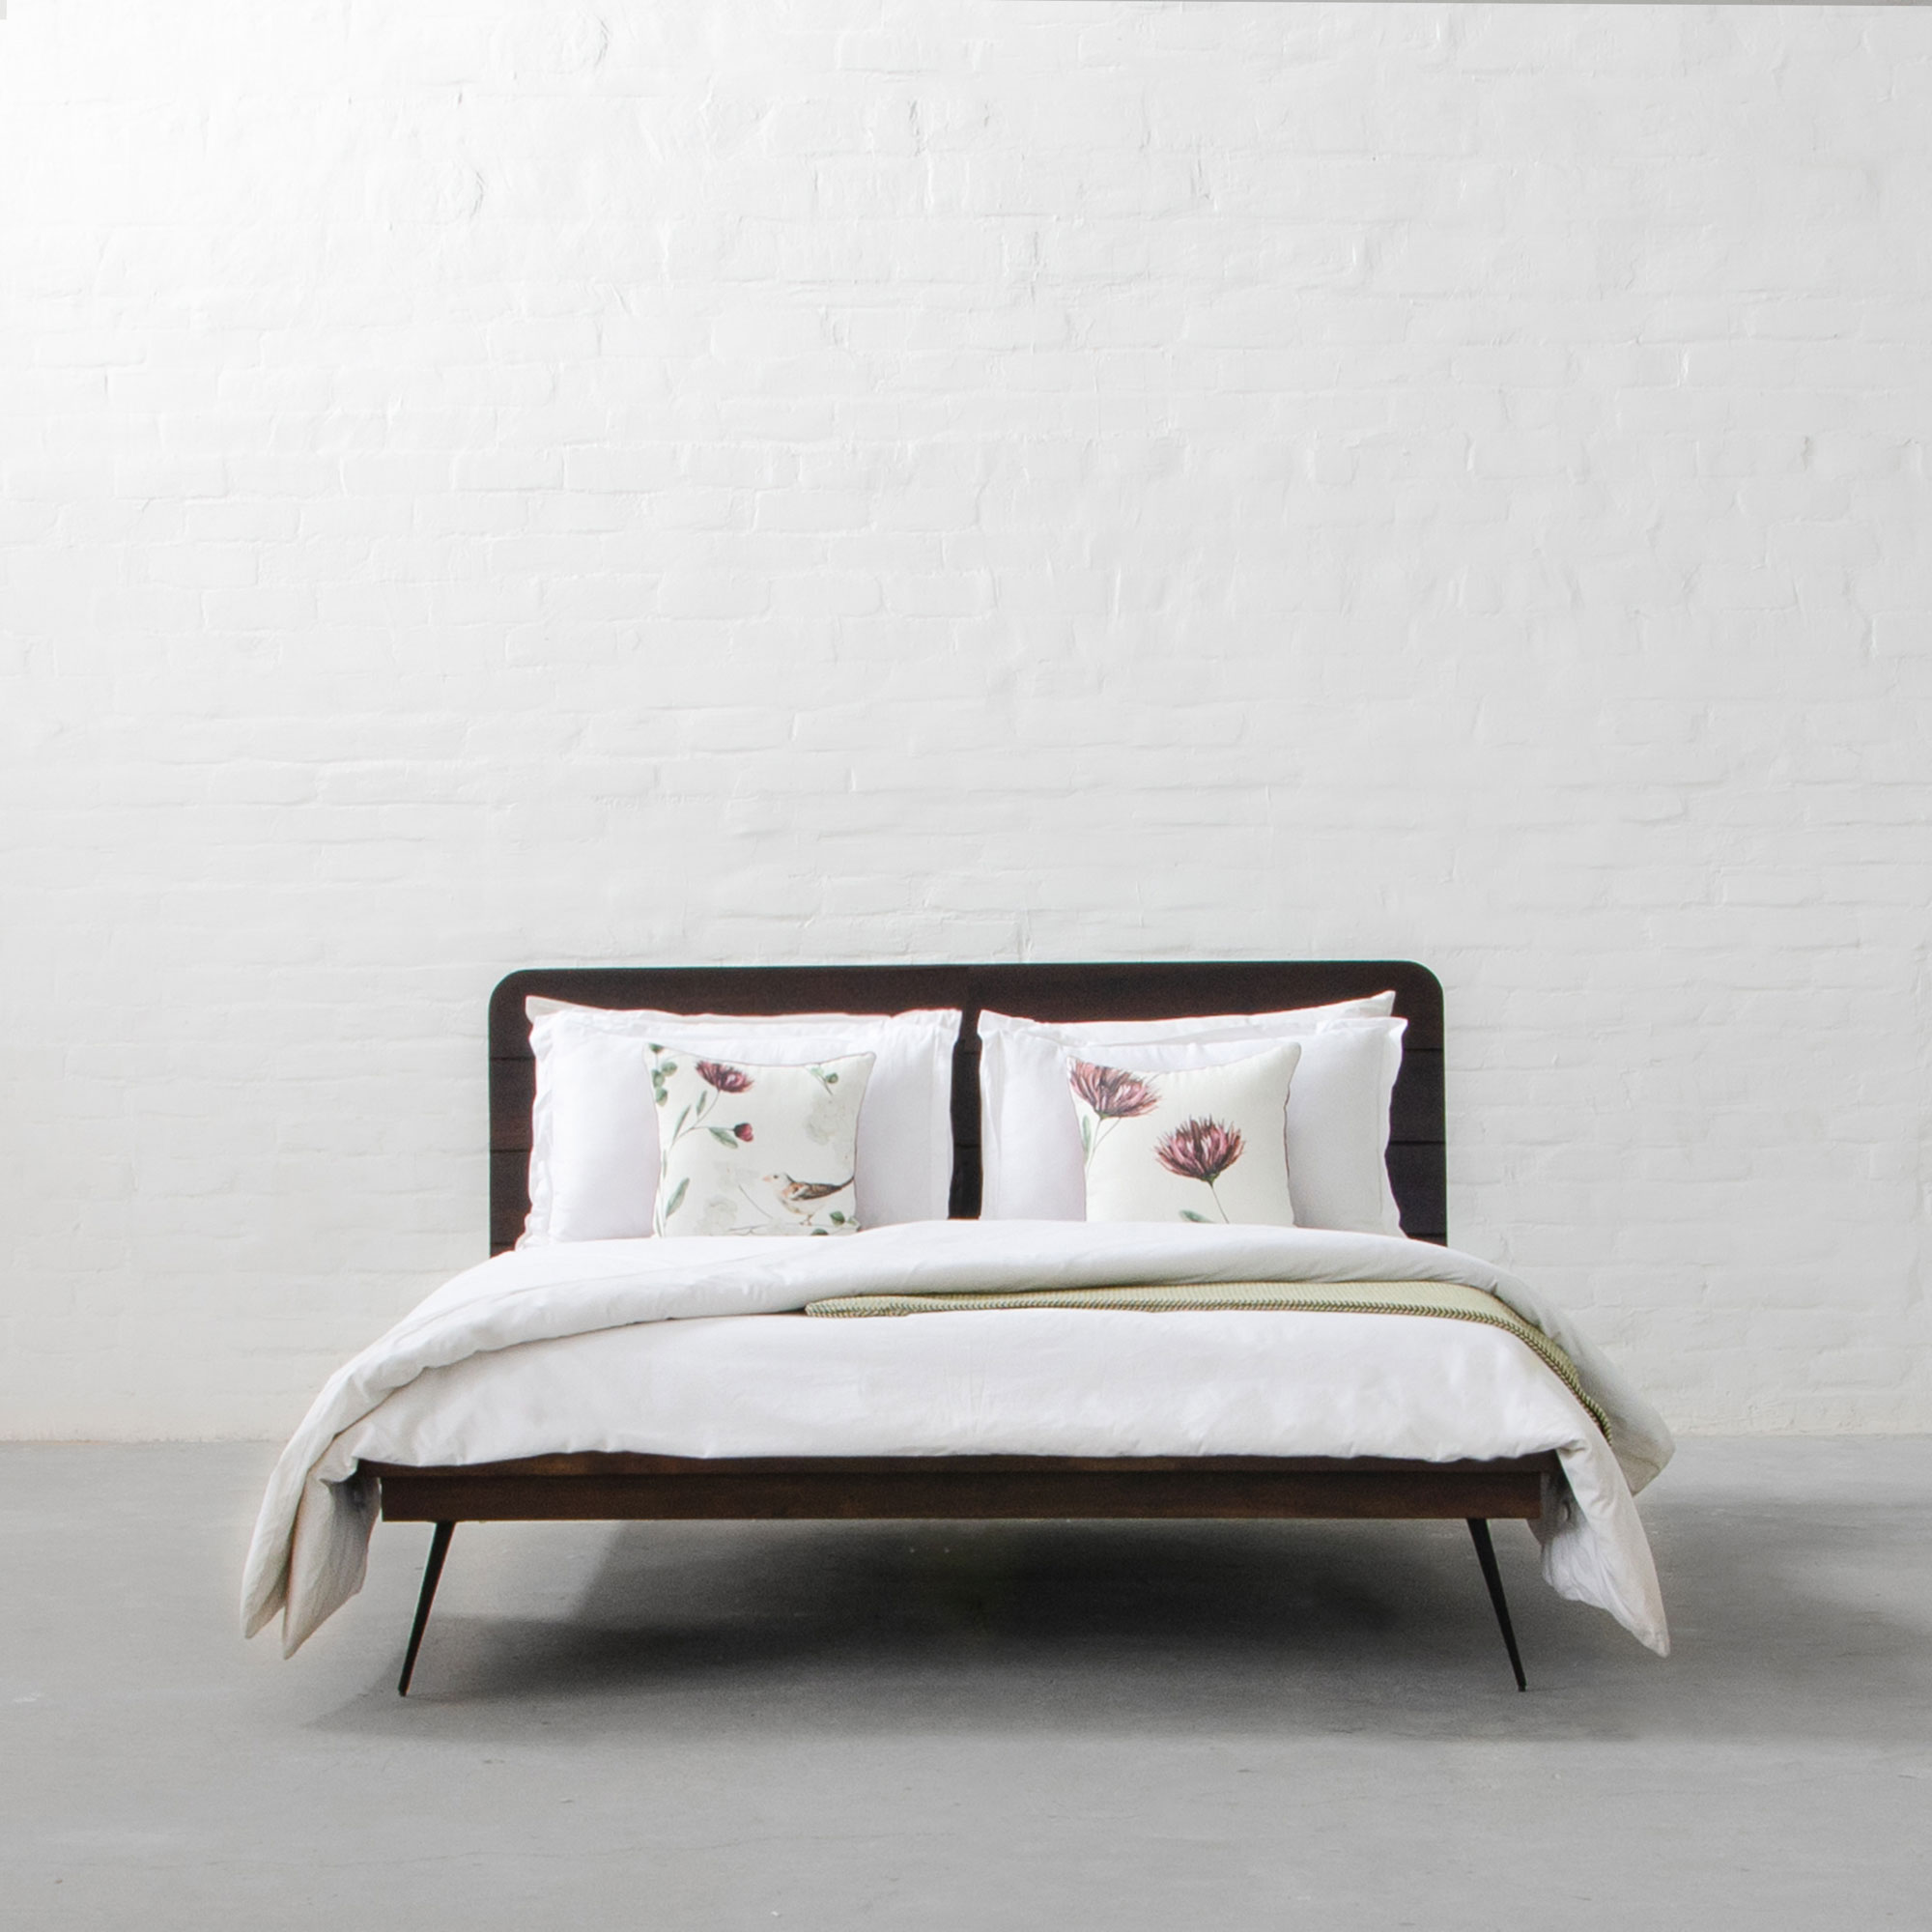 Malabar Hill Bed Collection